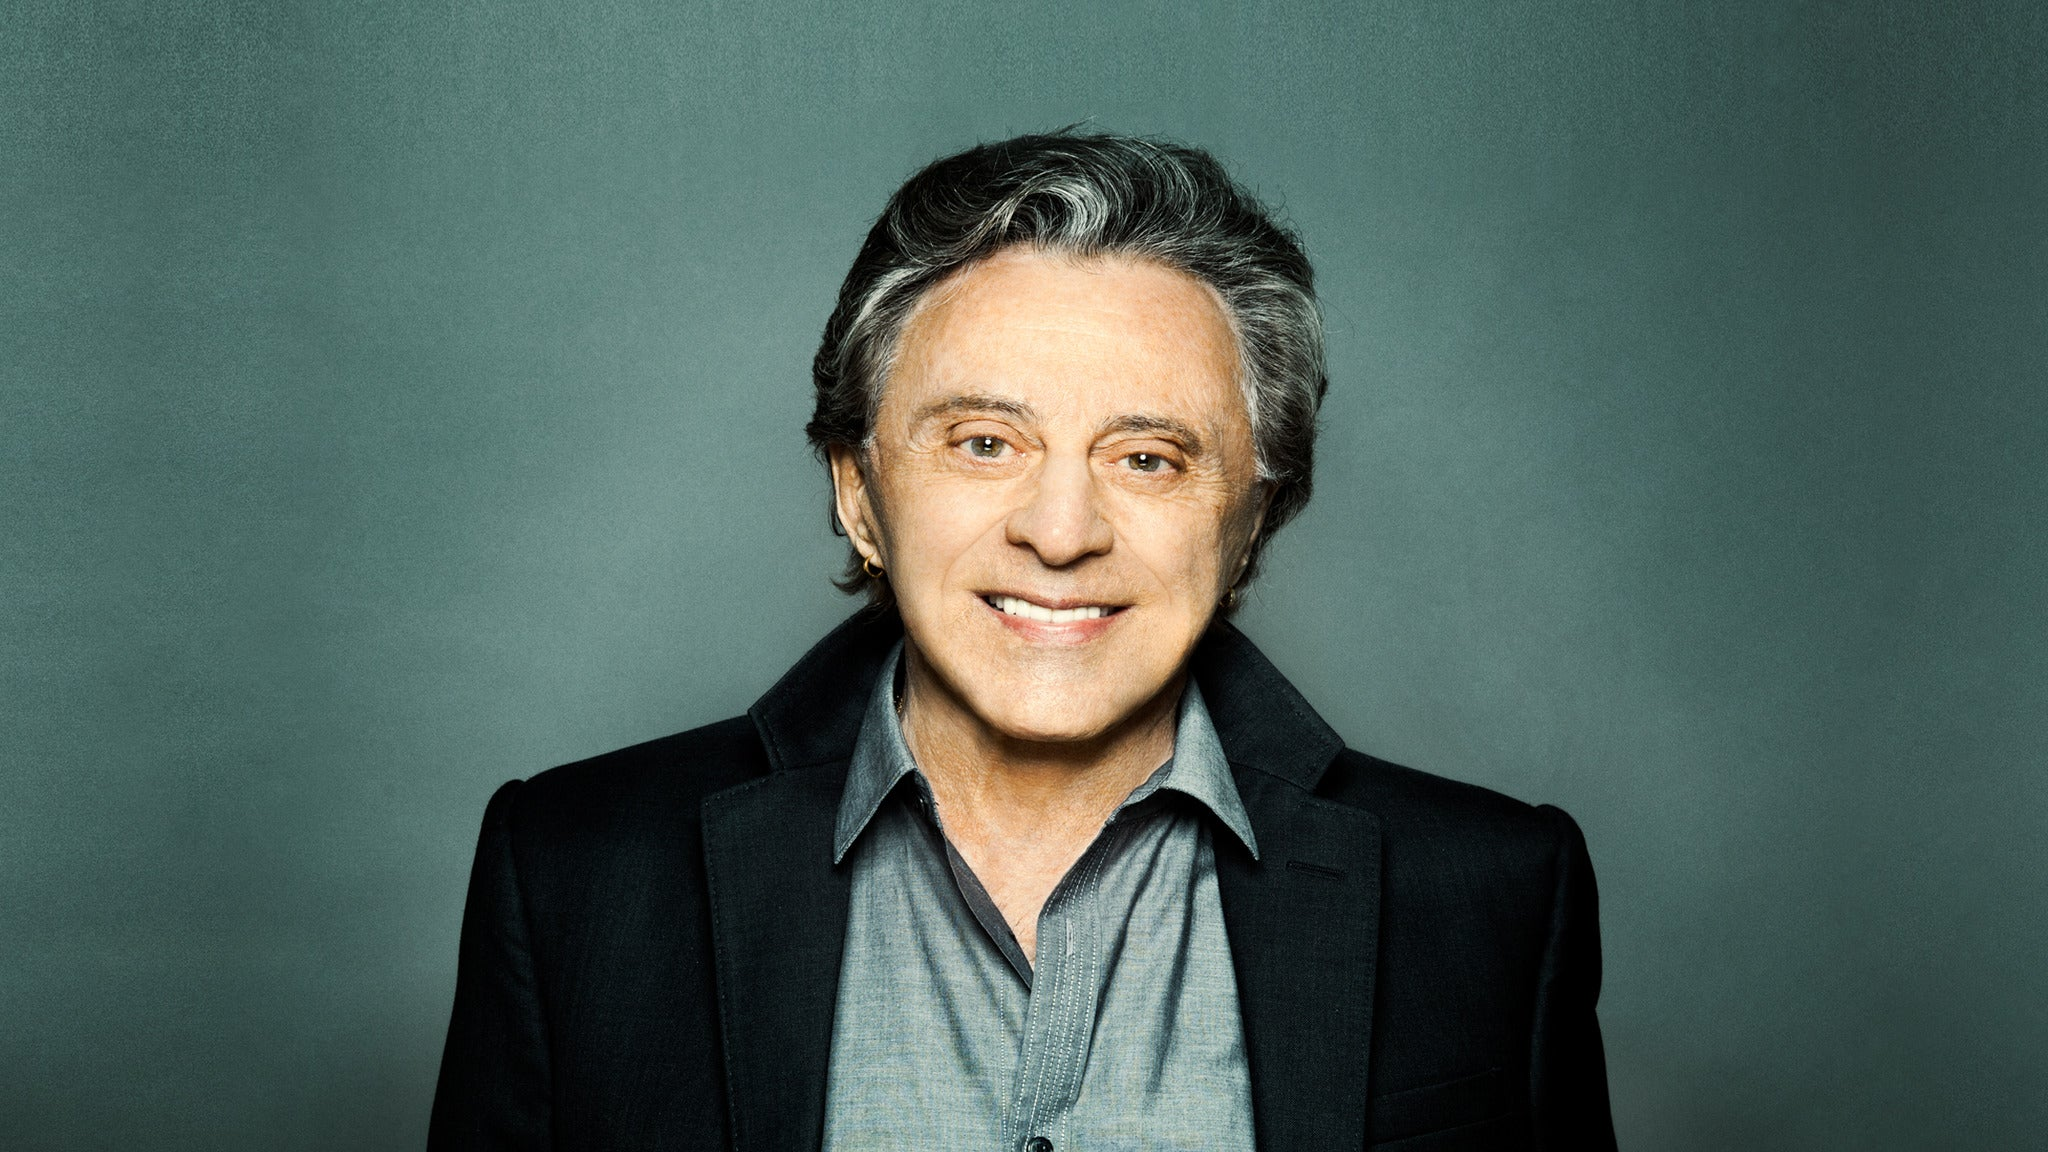 Frankie Valli & The Four Seasons at Macon City Auditorium - Macon, GA 31201